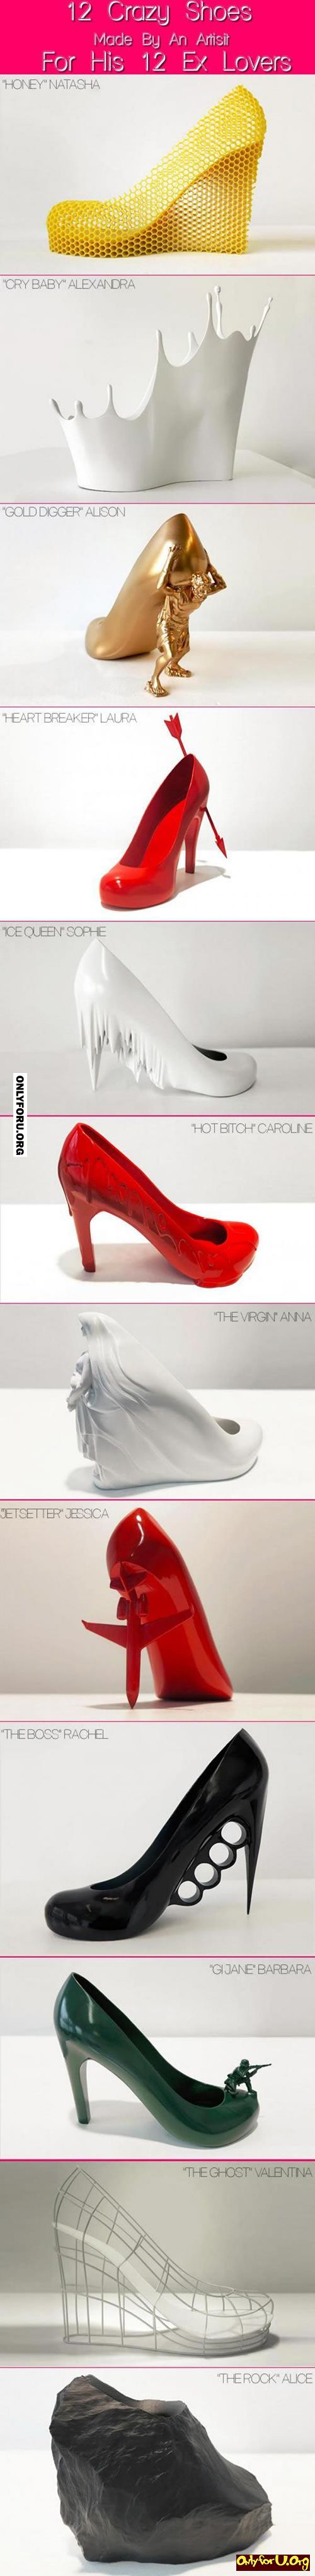 Artist Creates 12 Shoes For 12 Ex Lovers - #OnlyForU, #funny, #lol, #fun, #humor, #rofl, #gif, #troll, #comics, #meme, #gags, #new, #lol images, #lol gifs, #Funny pictures, #Funny gifs, #haha,